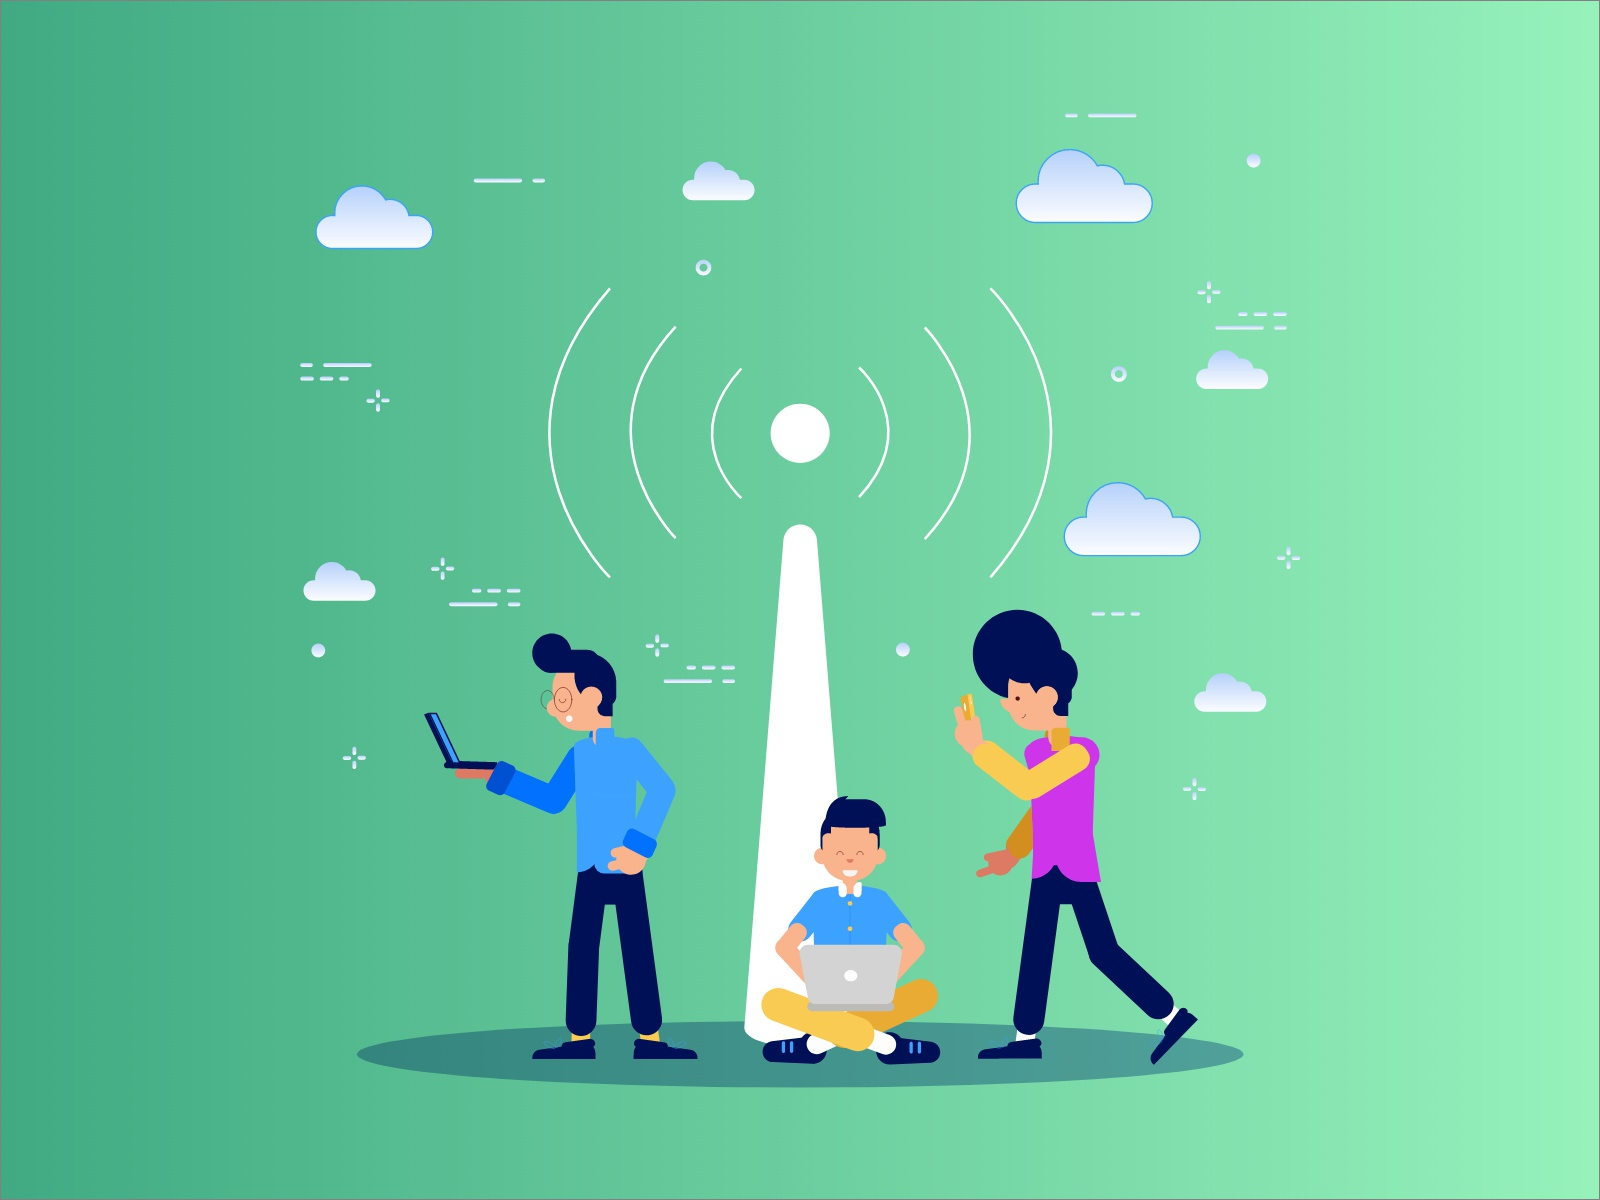 Wifi hotspot illustration by Sid yankanchi on Dribbble